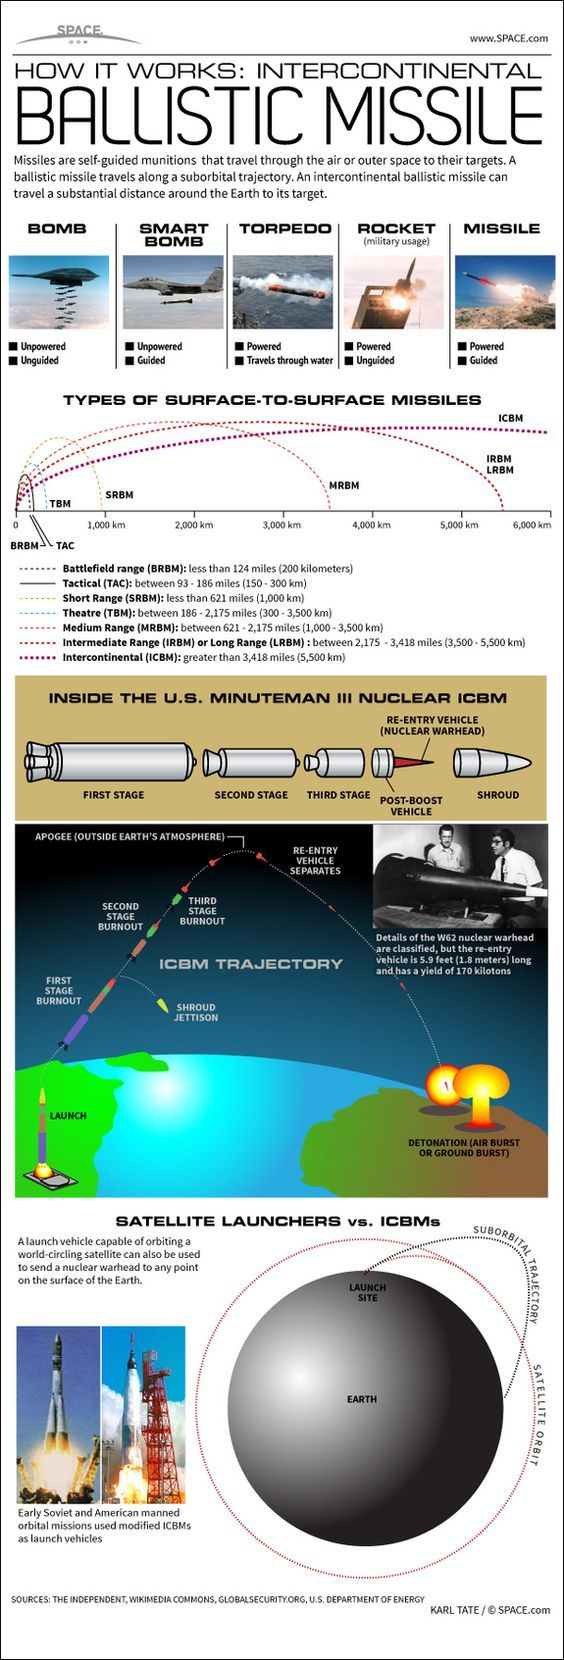 How intercontinental ballistic missiles work and send deadly explosive payloads to targets around the world.